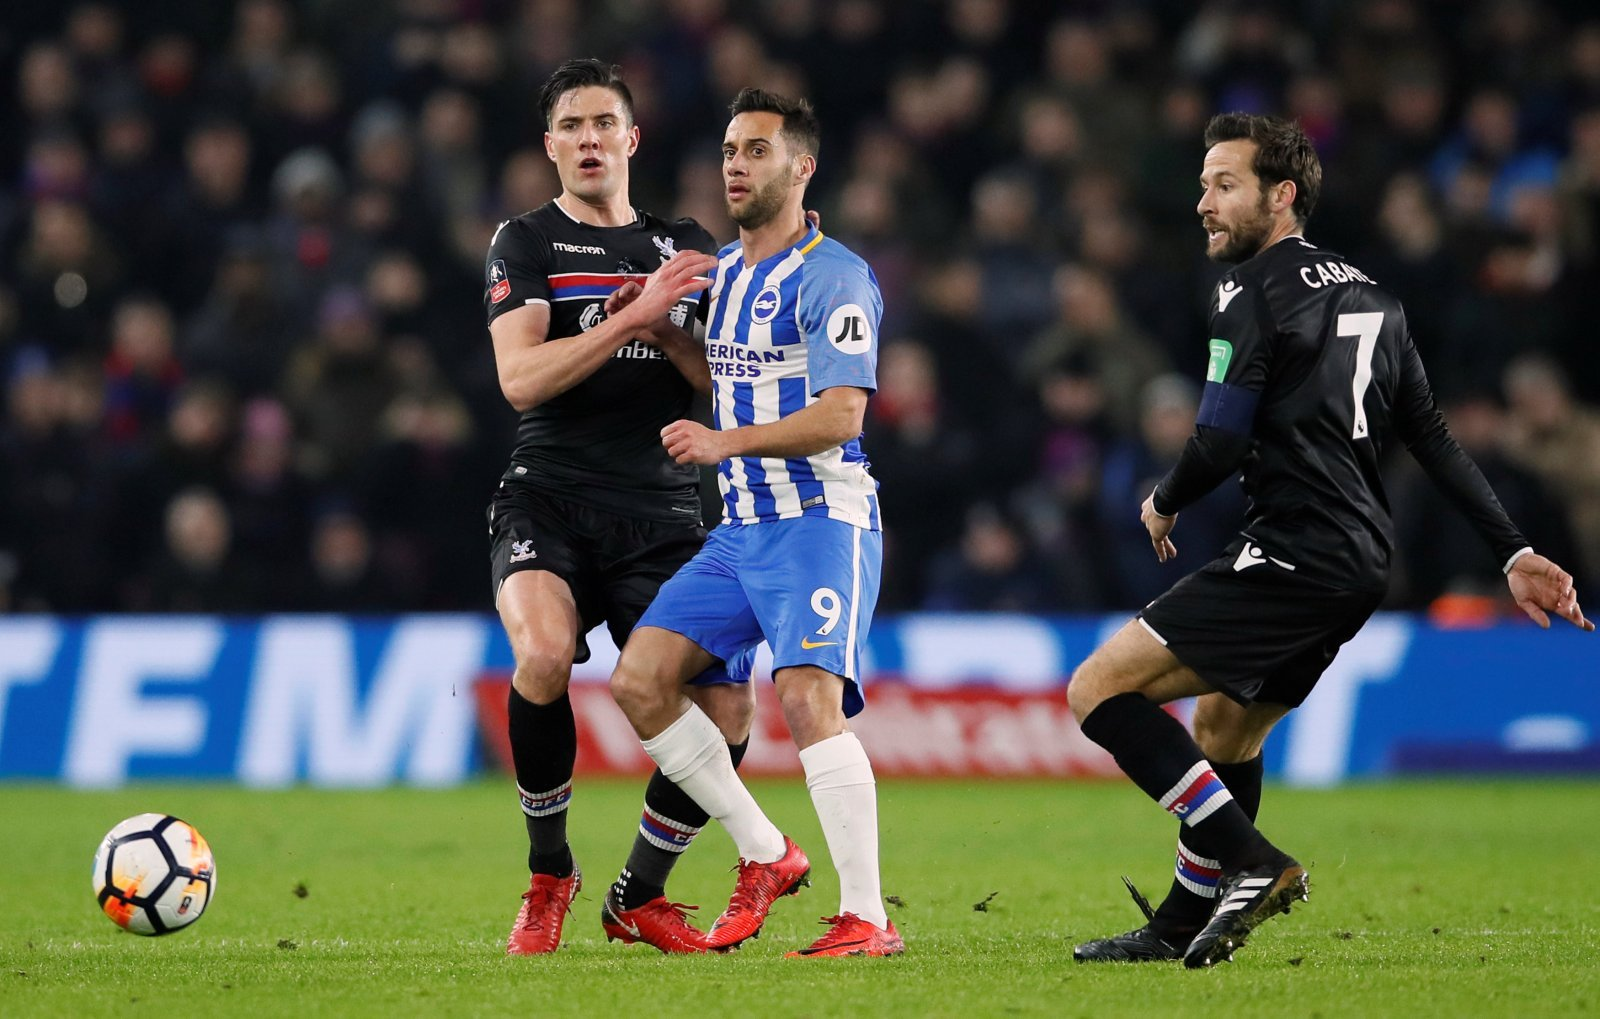 PL striker, Newcastle man: The Adthe Nuhiu upgrades that Sheffield Wednesday must look to sign in the summer- page 1 of 3